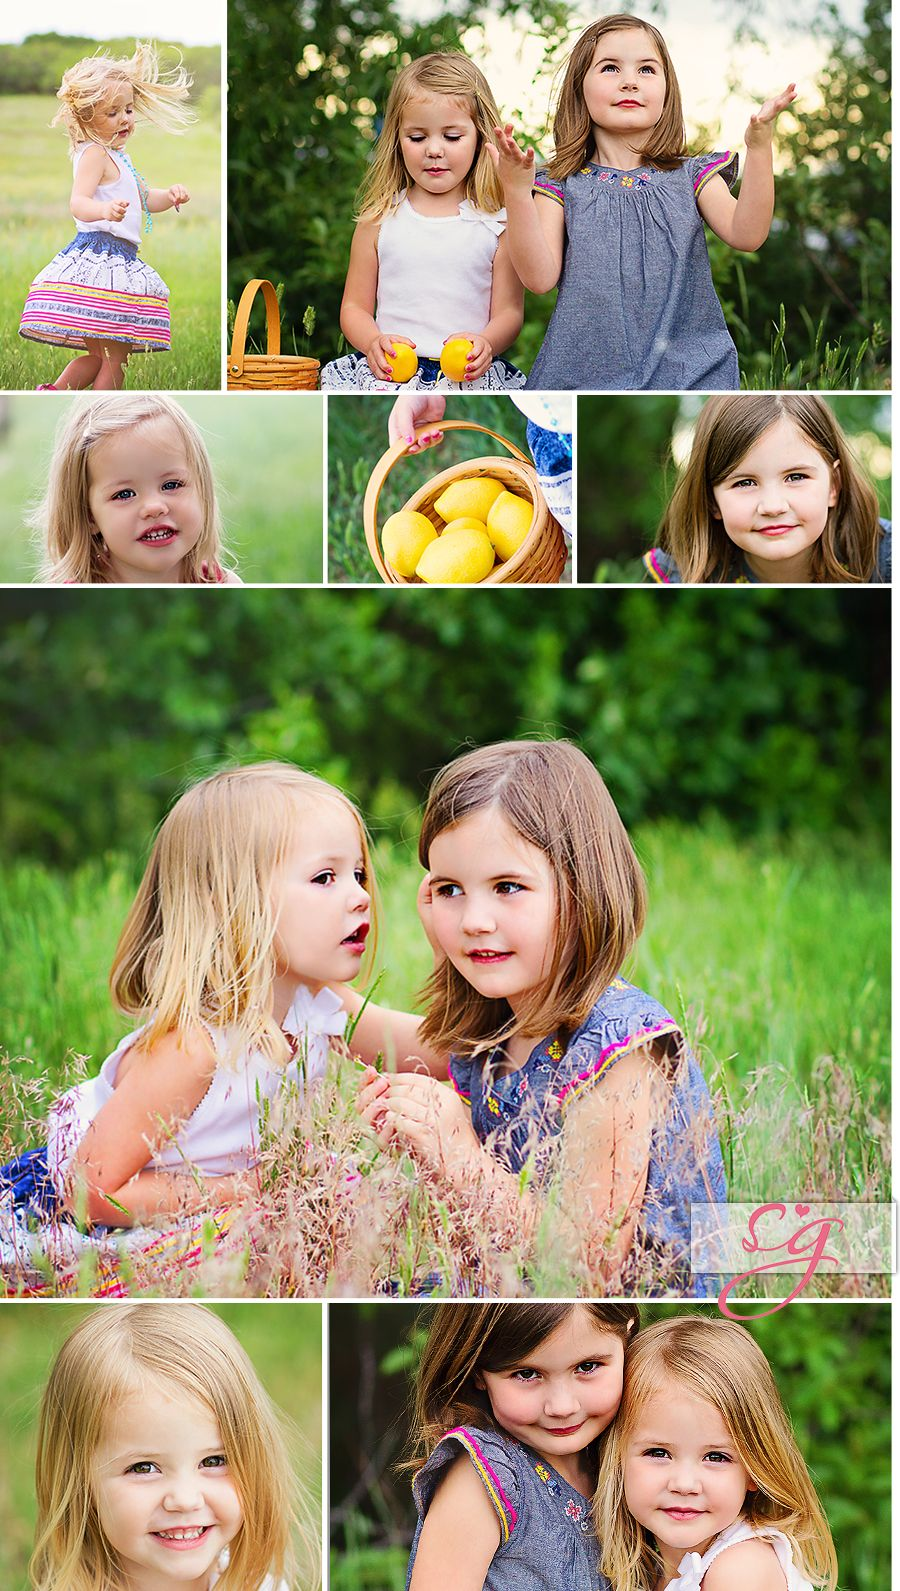 My sweet nieces!  LOVE THE PICTURES @Sara Garcia!